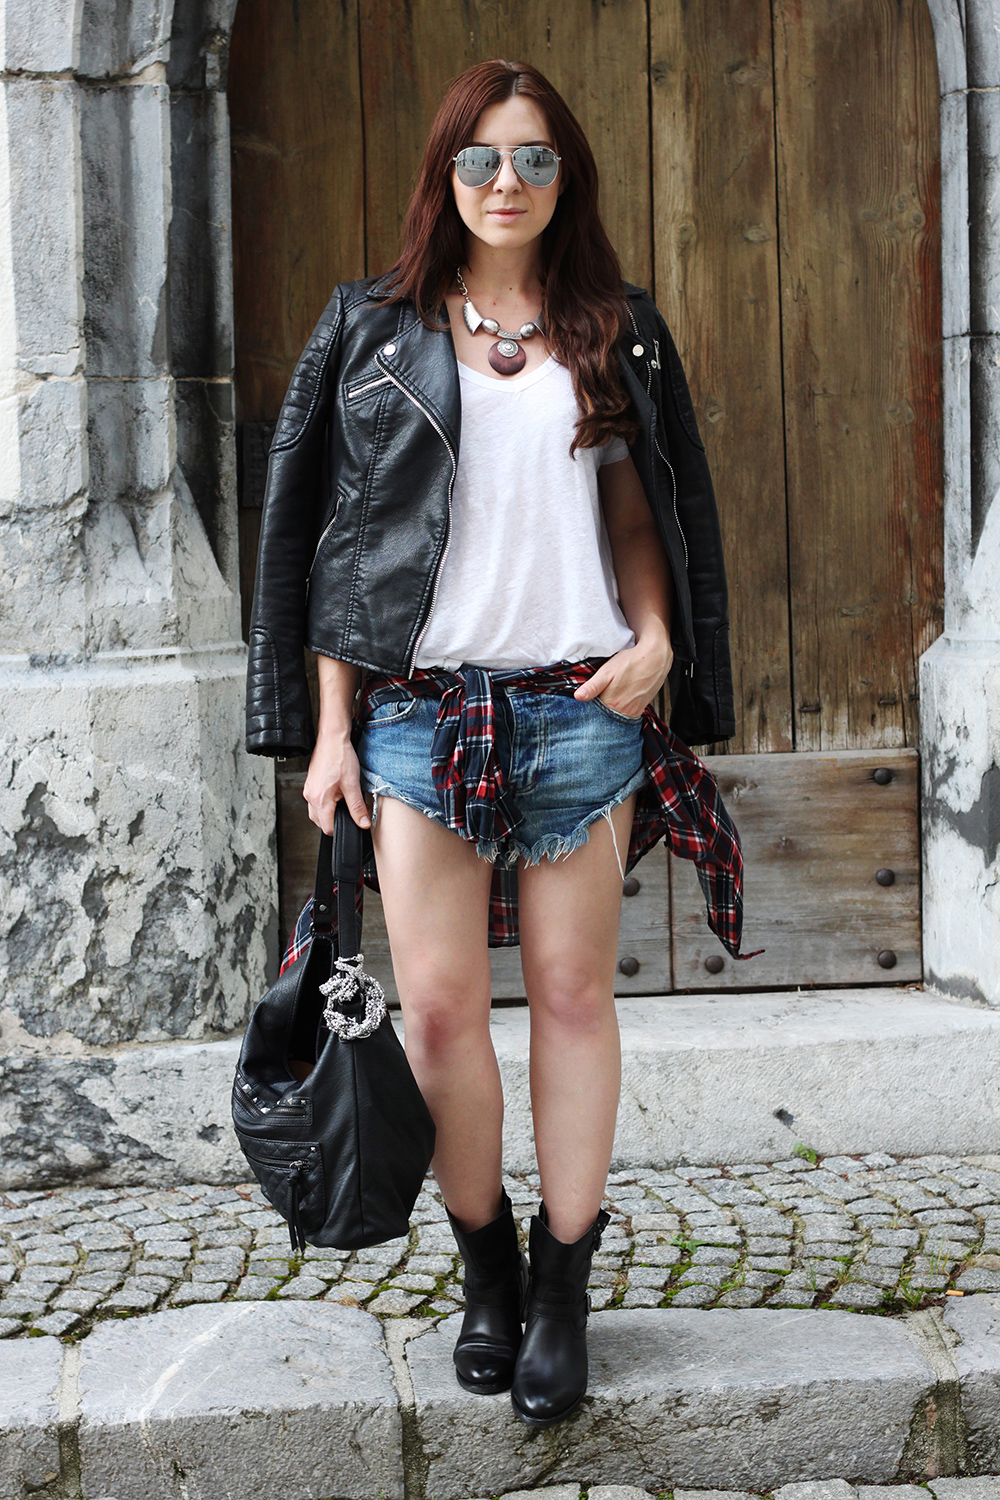 who is mocca, fashionblog österreich, fashionblog tirol, one teaspoon denim shorts, bikerboots tchibo, lederhandtasche tchibo, kette tchibo, lederjacke zara, leinenshirt zara, französische bulldogge, sibirischer Husky